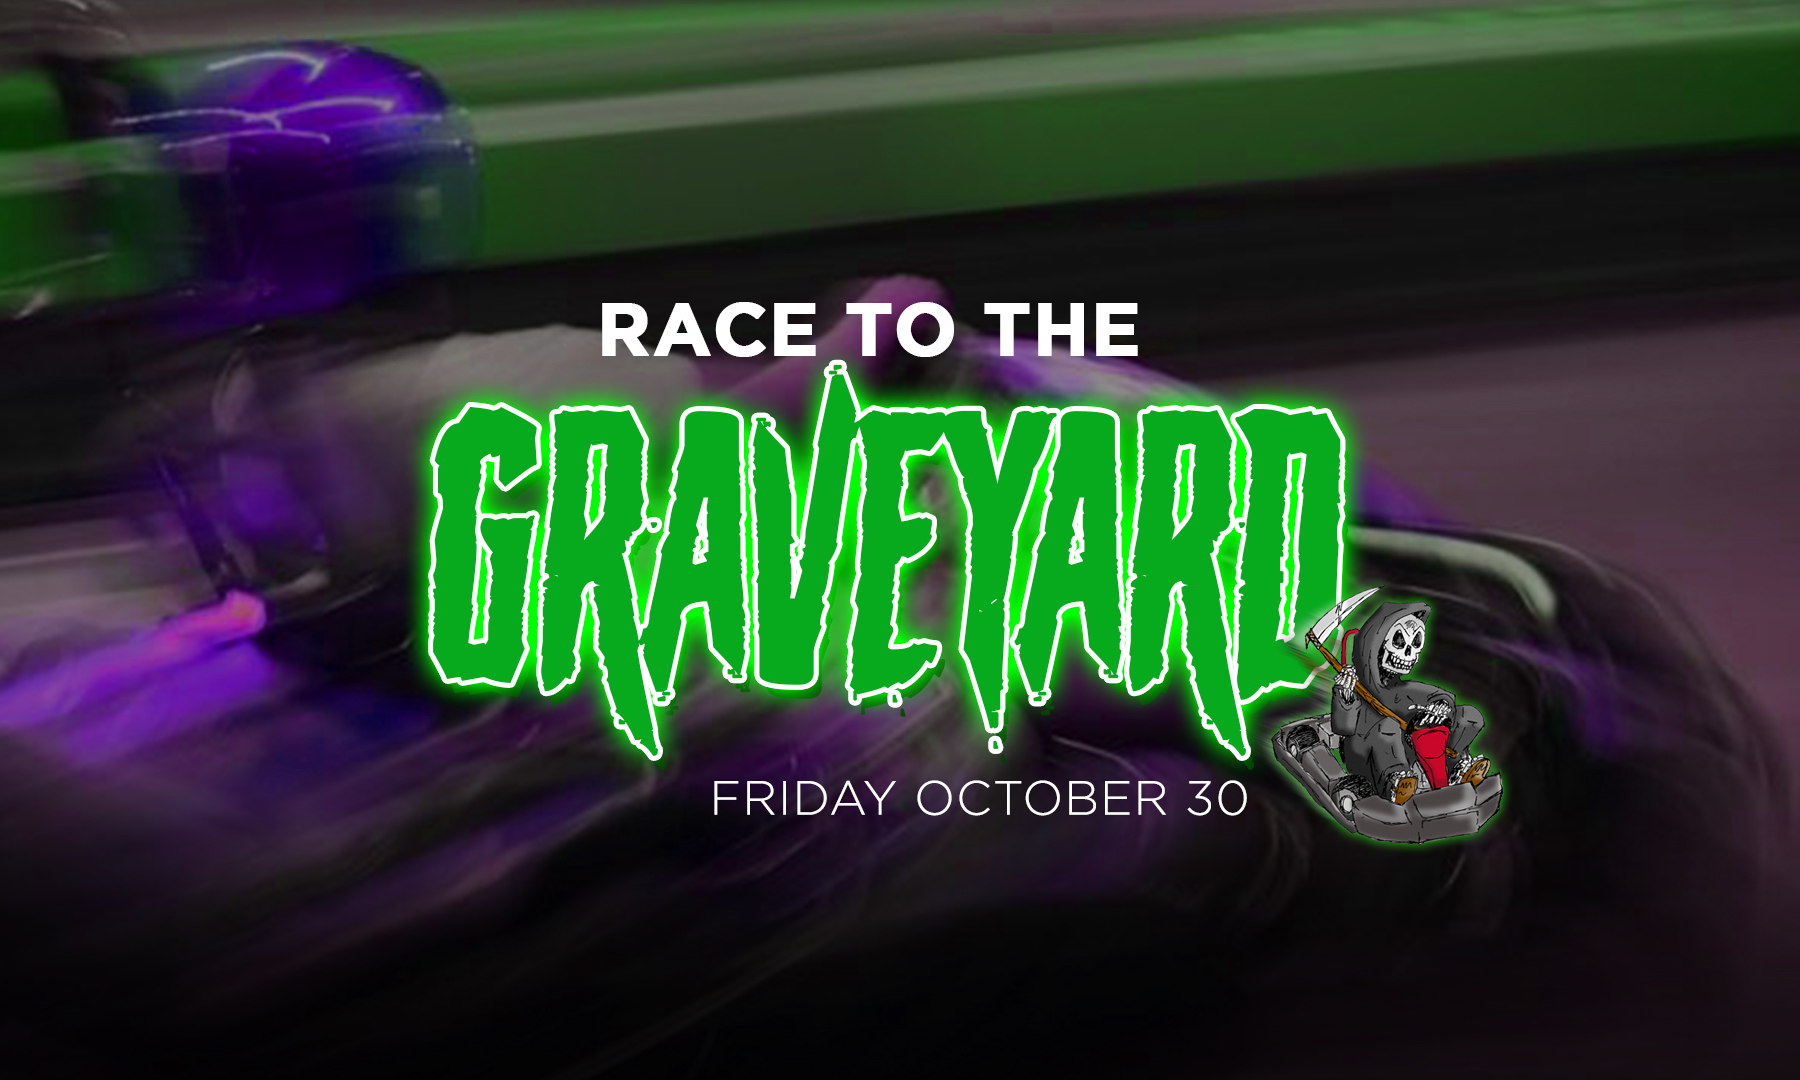 Race to the Graveyeard 2020